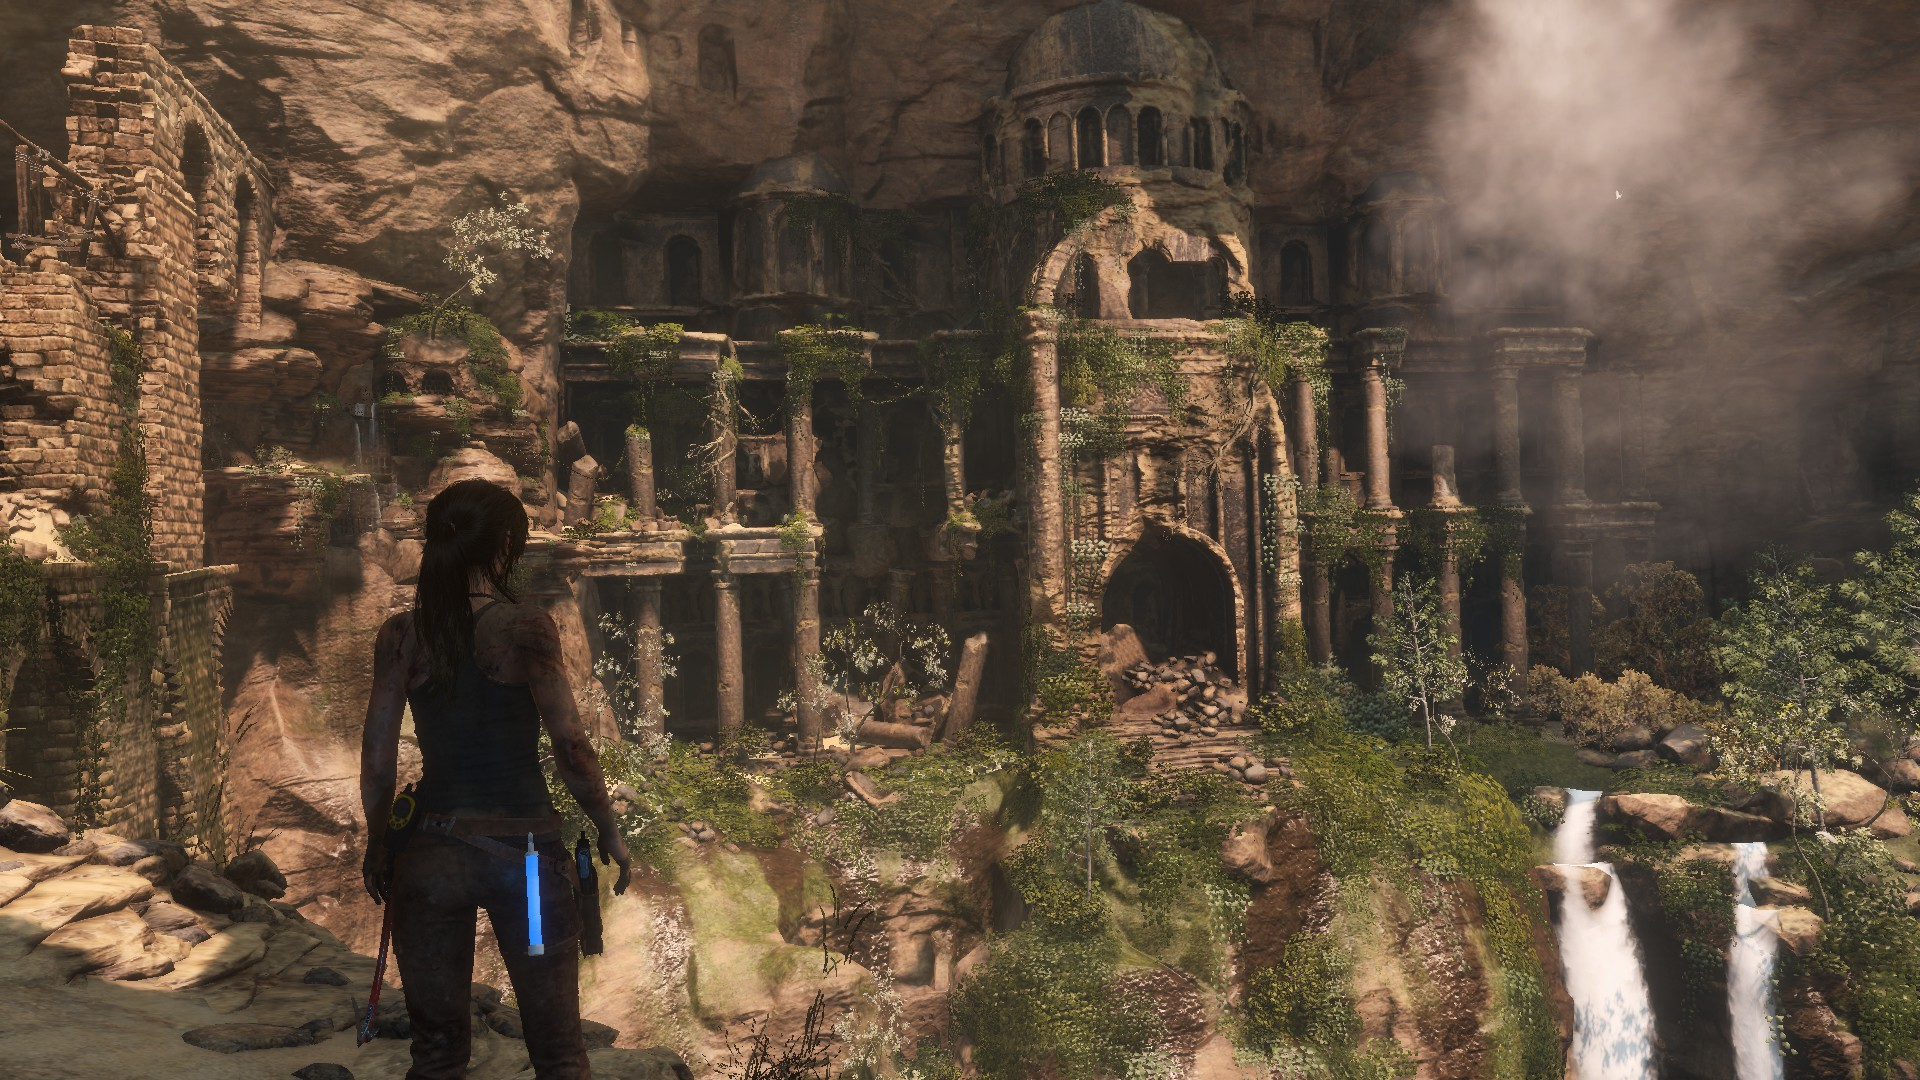 20171203202001_1.jpg - Rise of the Tomb Raider